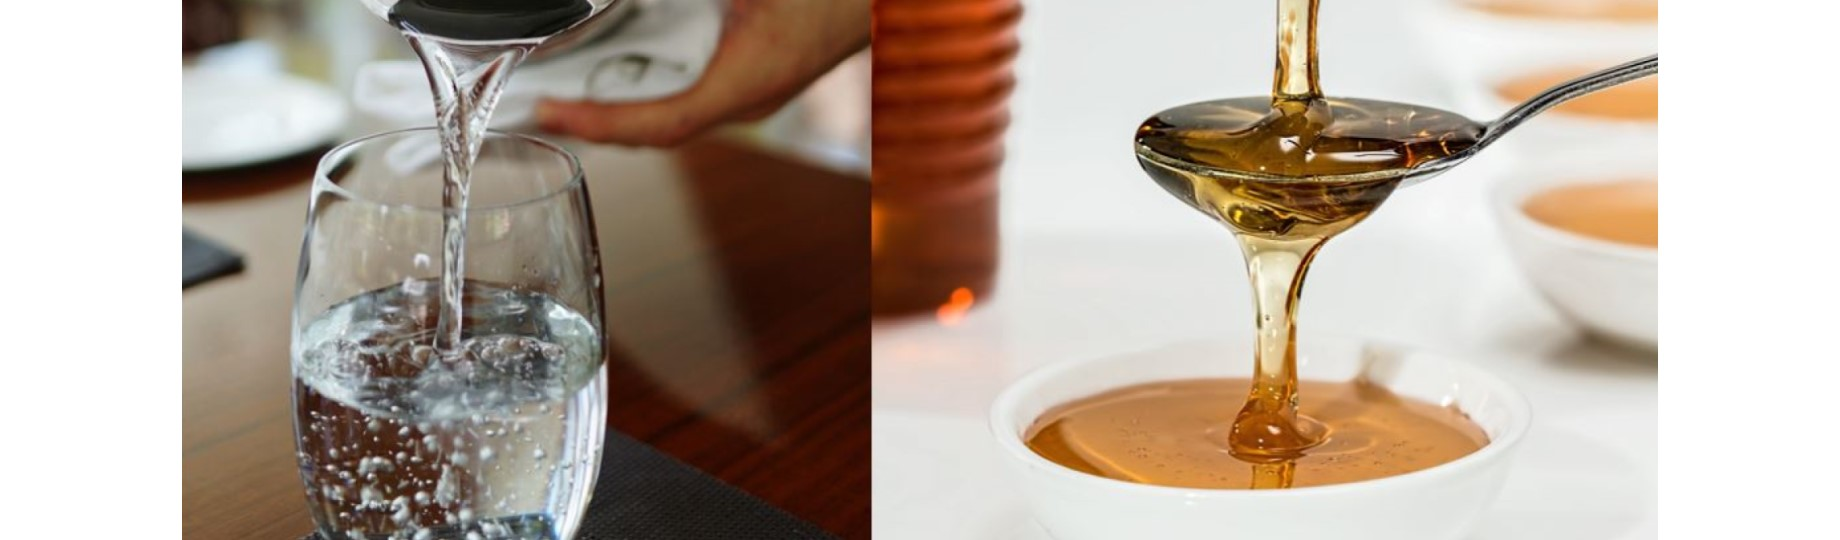 Water and Honey Viscosity examples